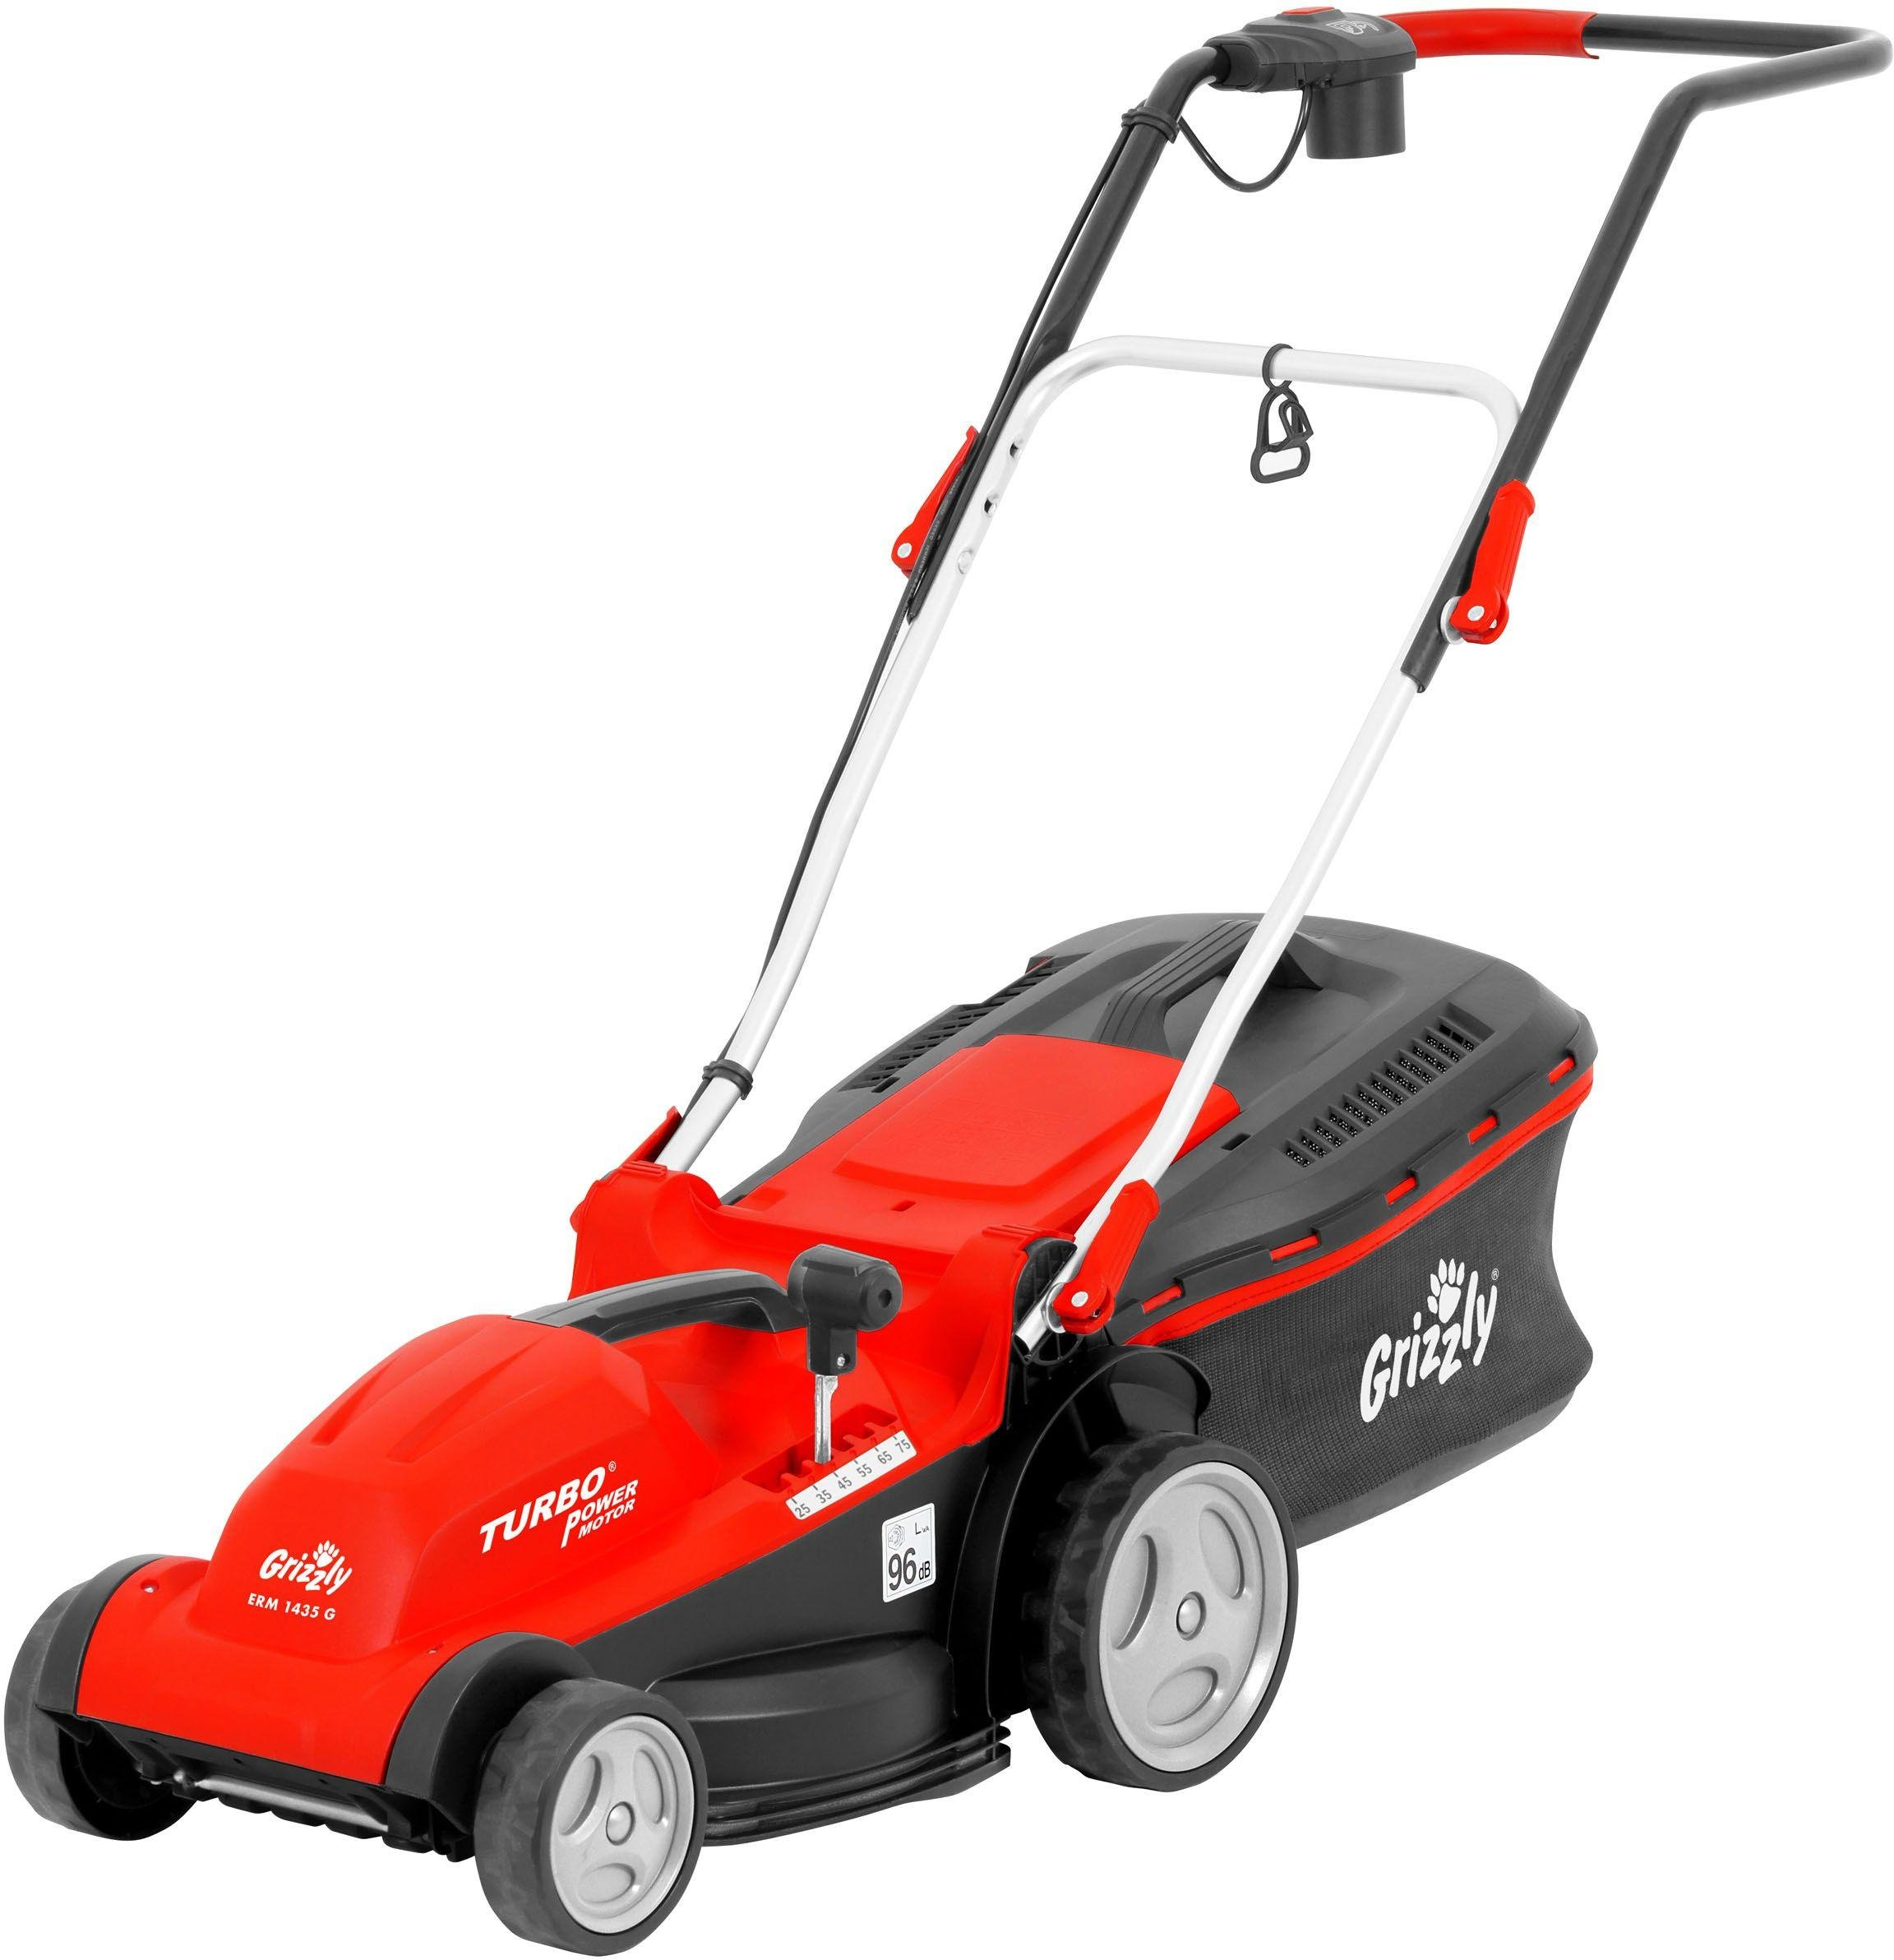 Image of Grizzly Tools 35cm Corded Rotary Lawnmower - 1400W